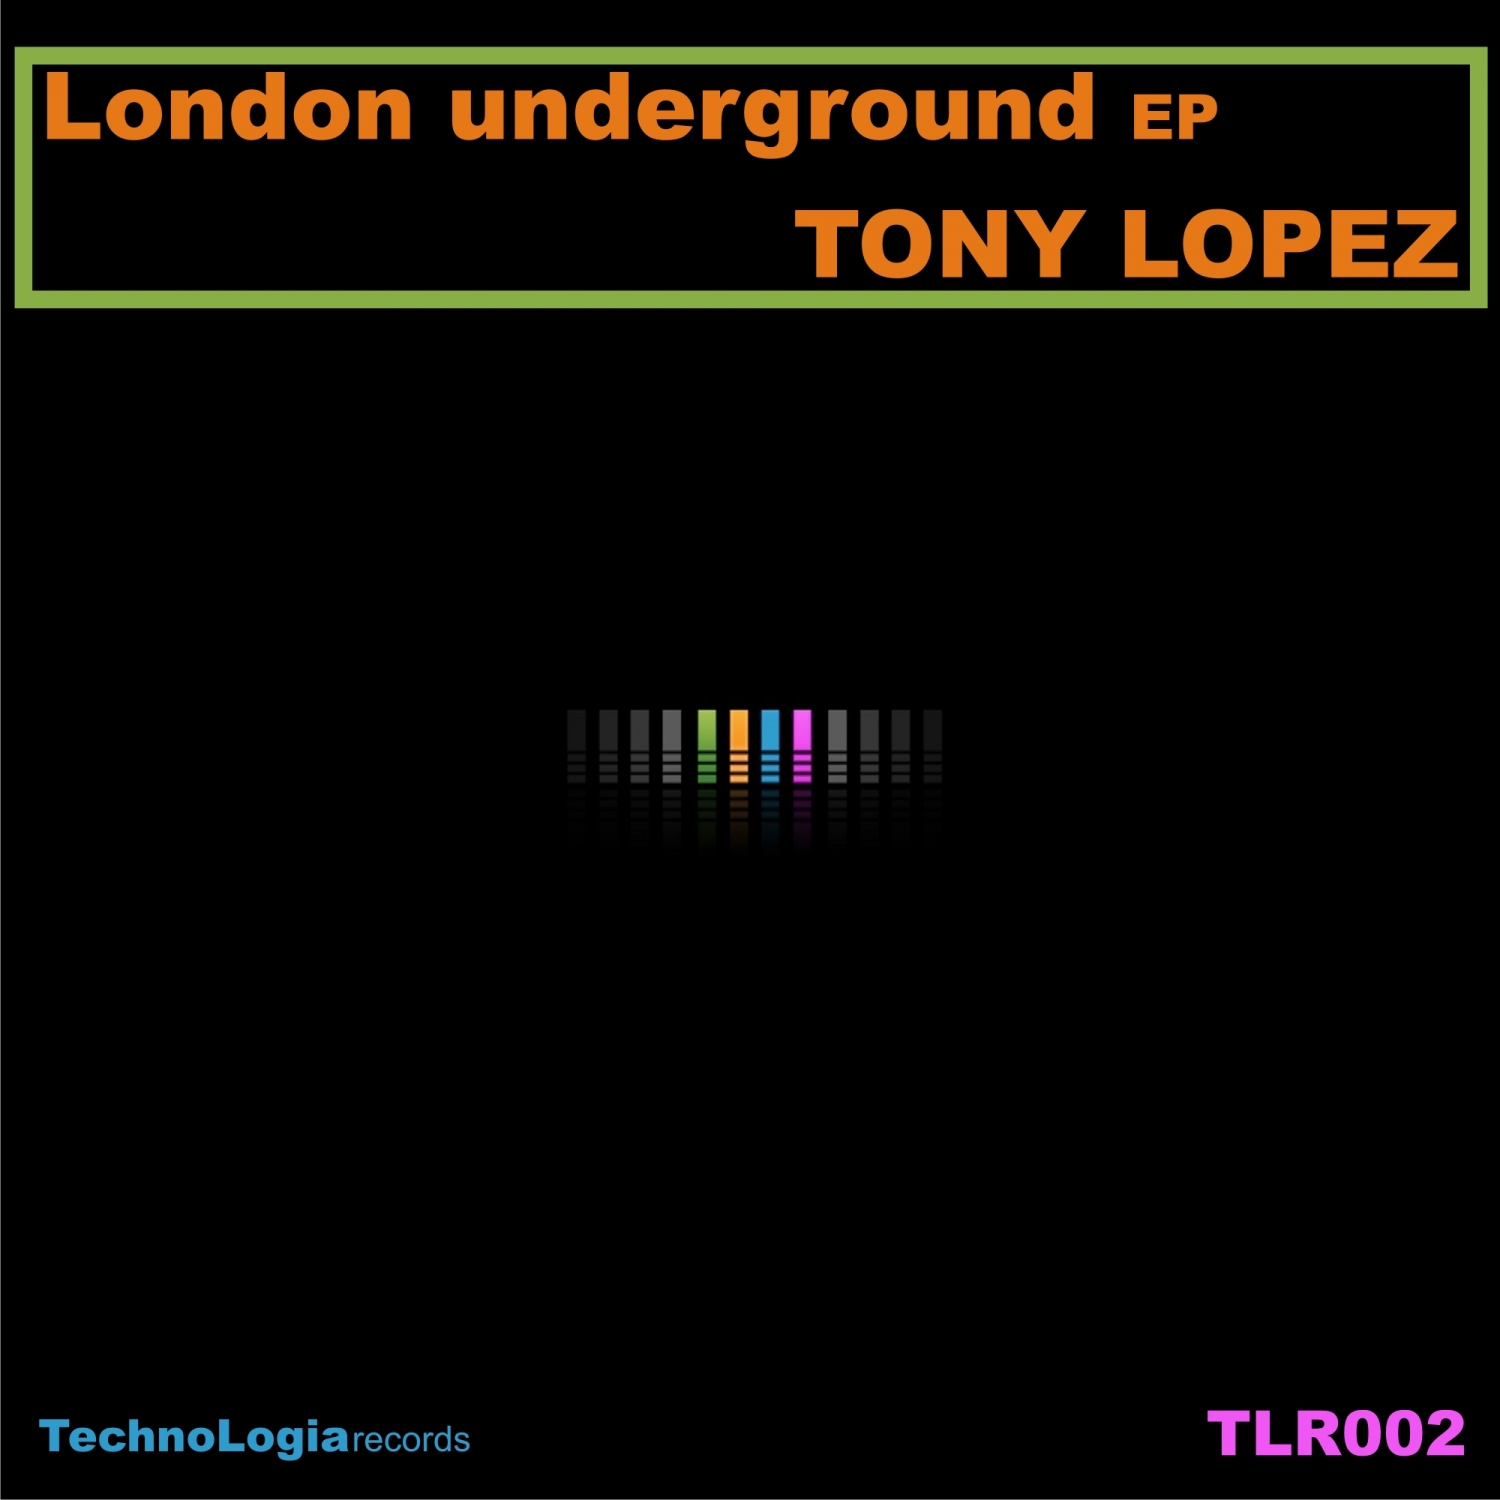 Tony Lopez - Mirrored reflection (Original mix)